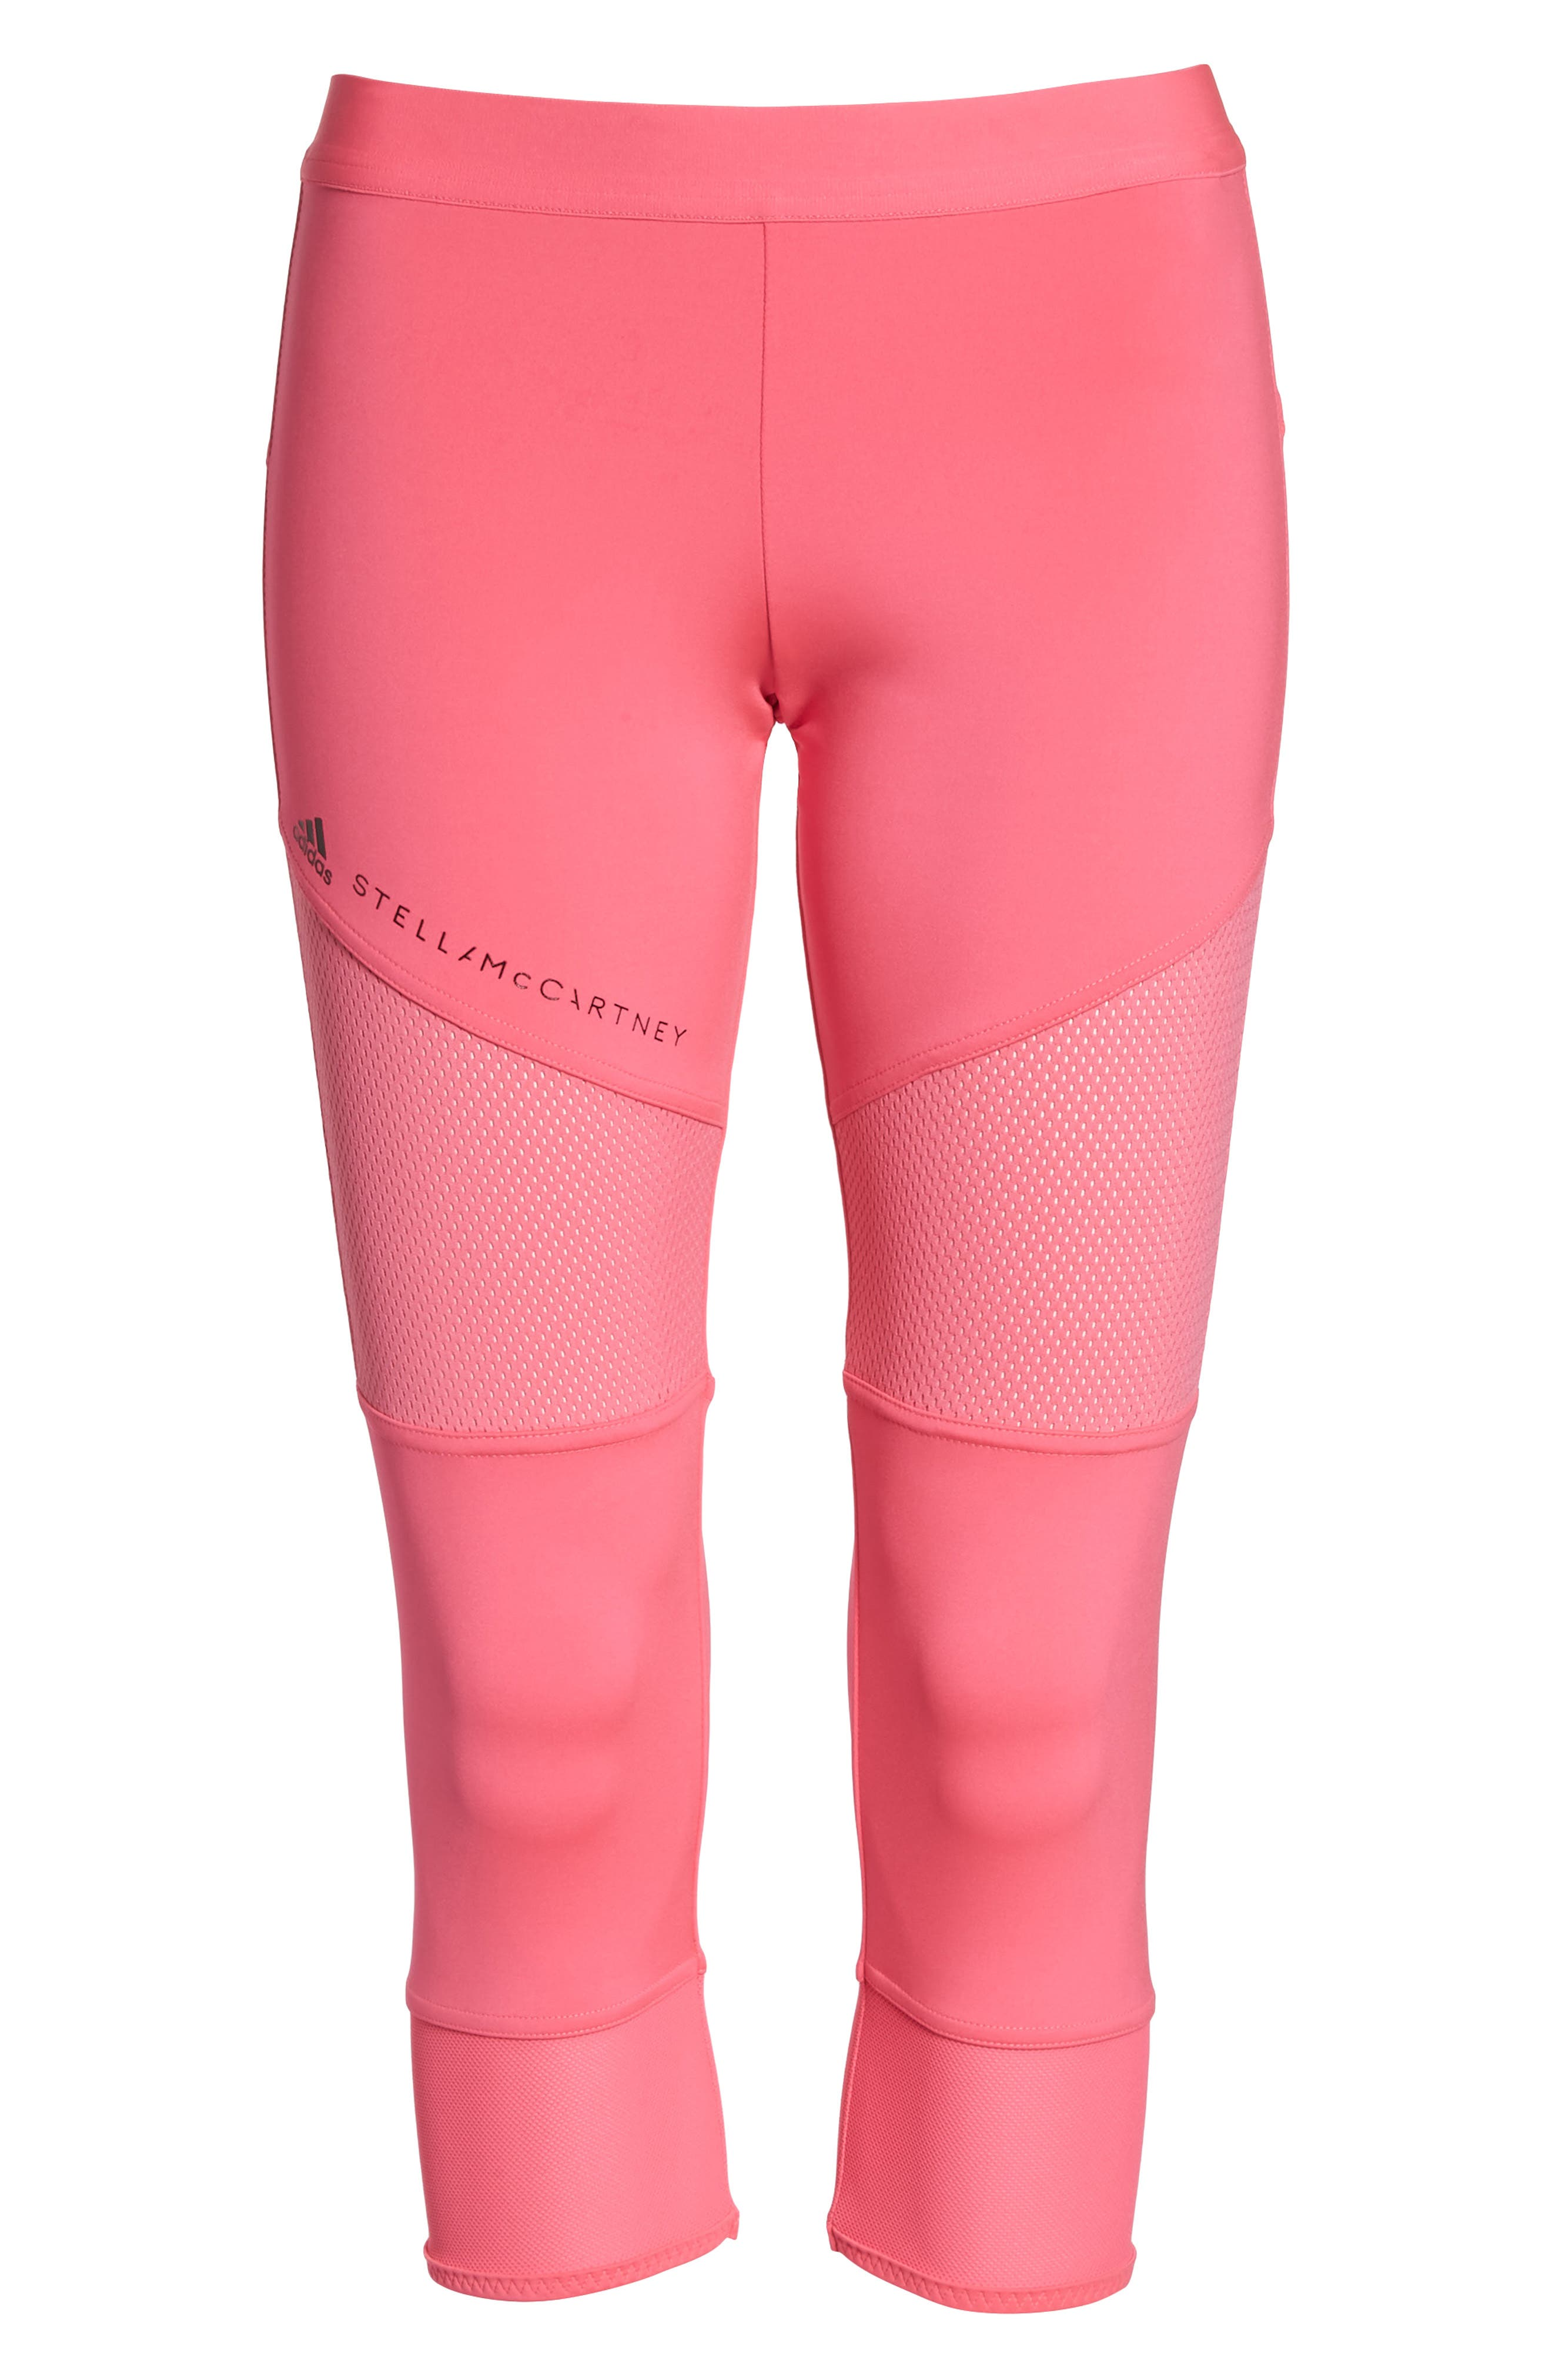 Performance Essentials Crop Leggings,                             Alternate thumbnail 7, color,                             SOLAR PINK